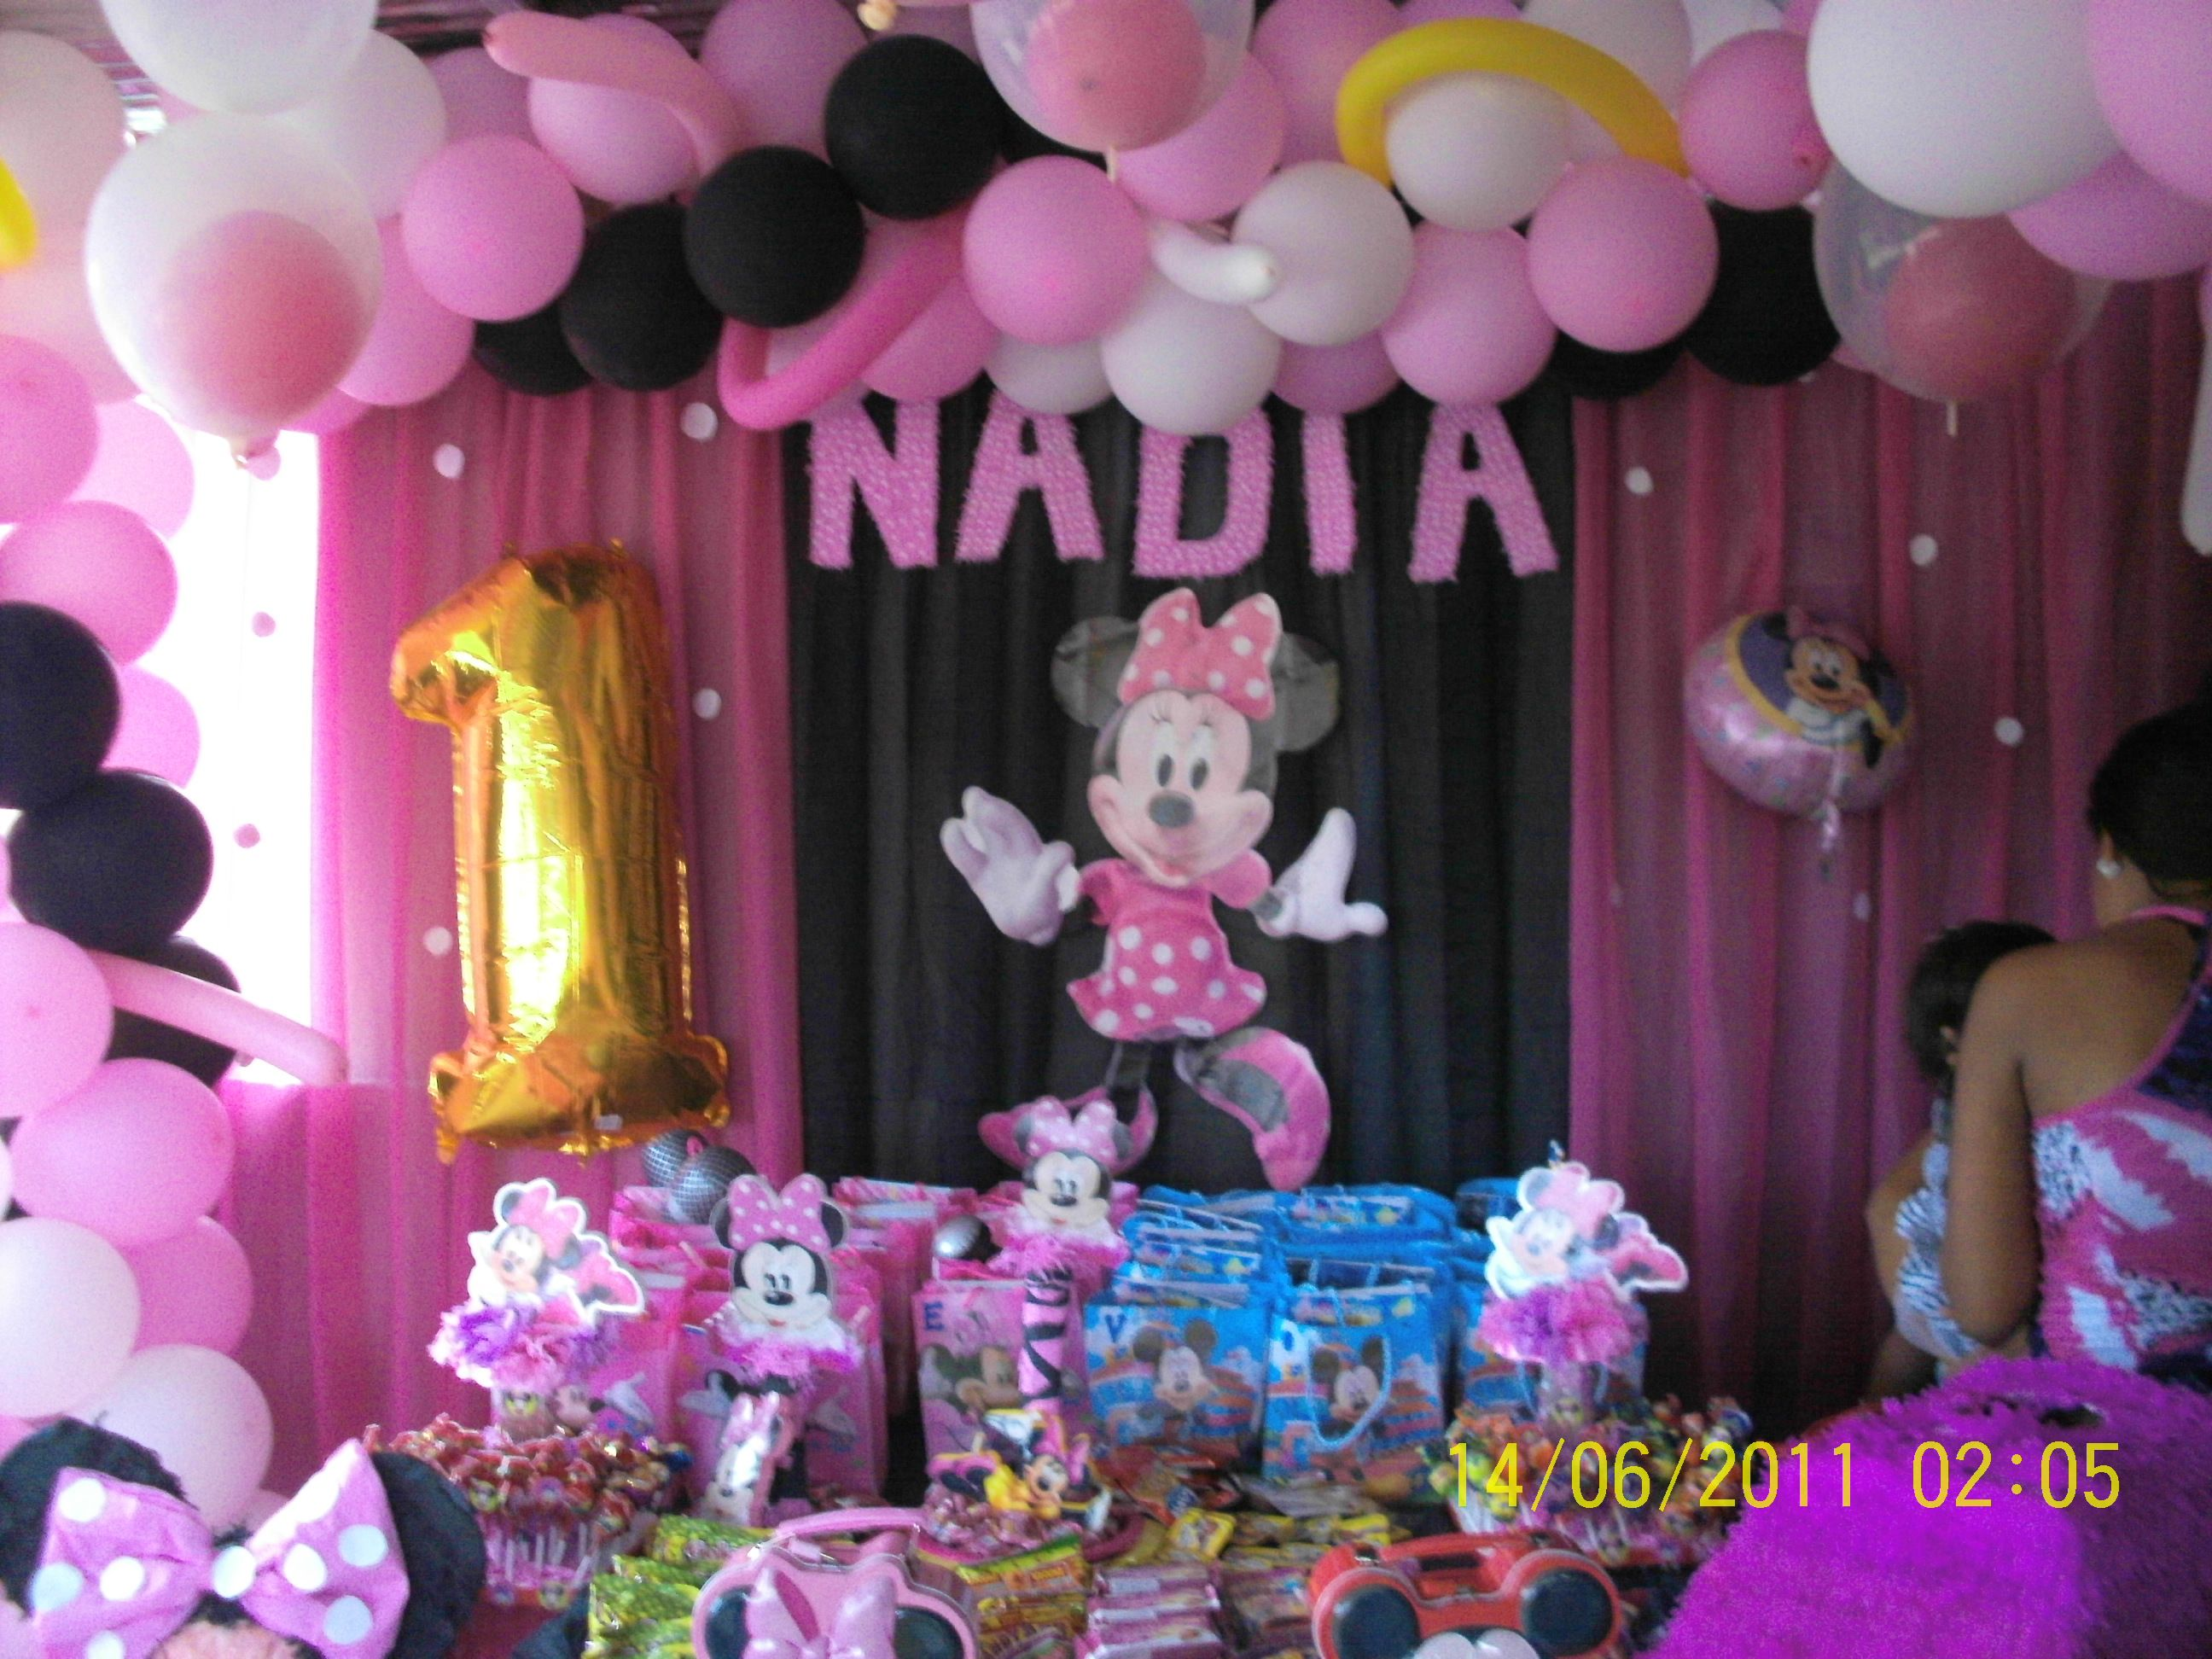 Decoraci n de cumplea os minie rosada fiestas para ni os for 3d decoration for birthday